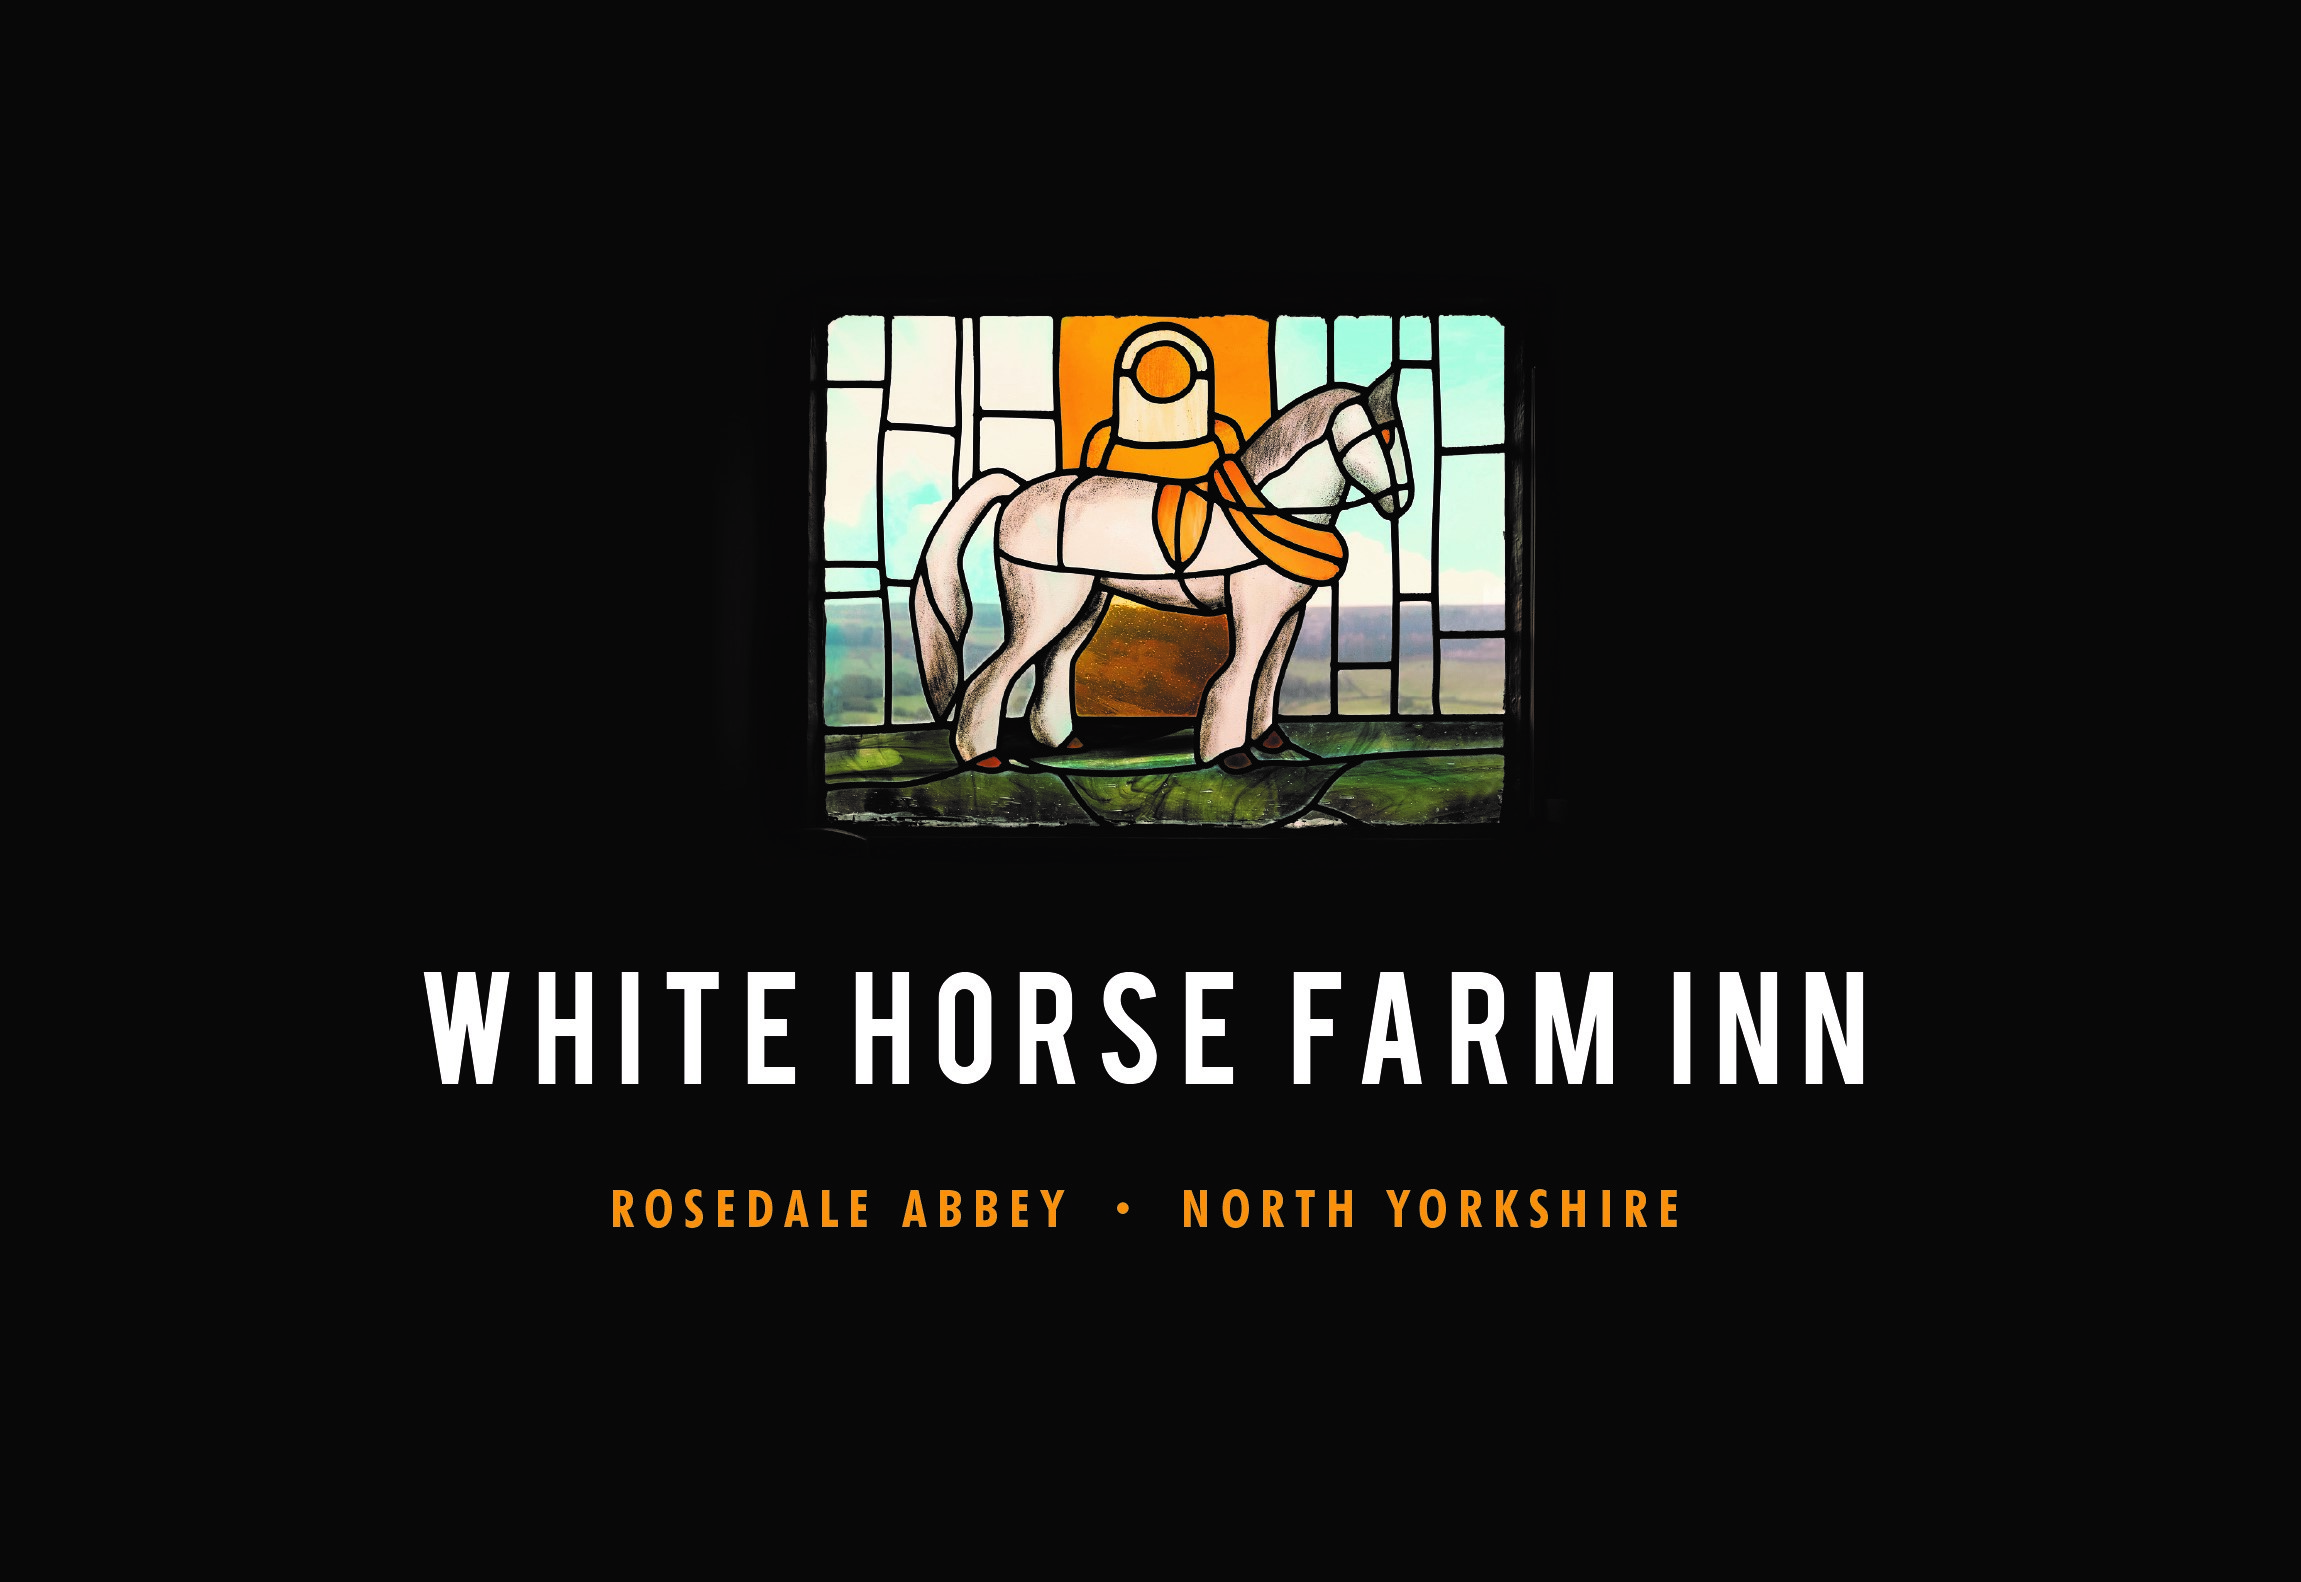 White Horse Farm Inn